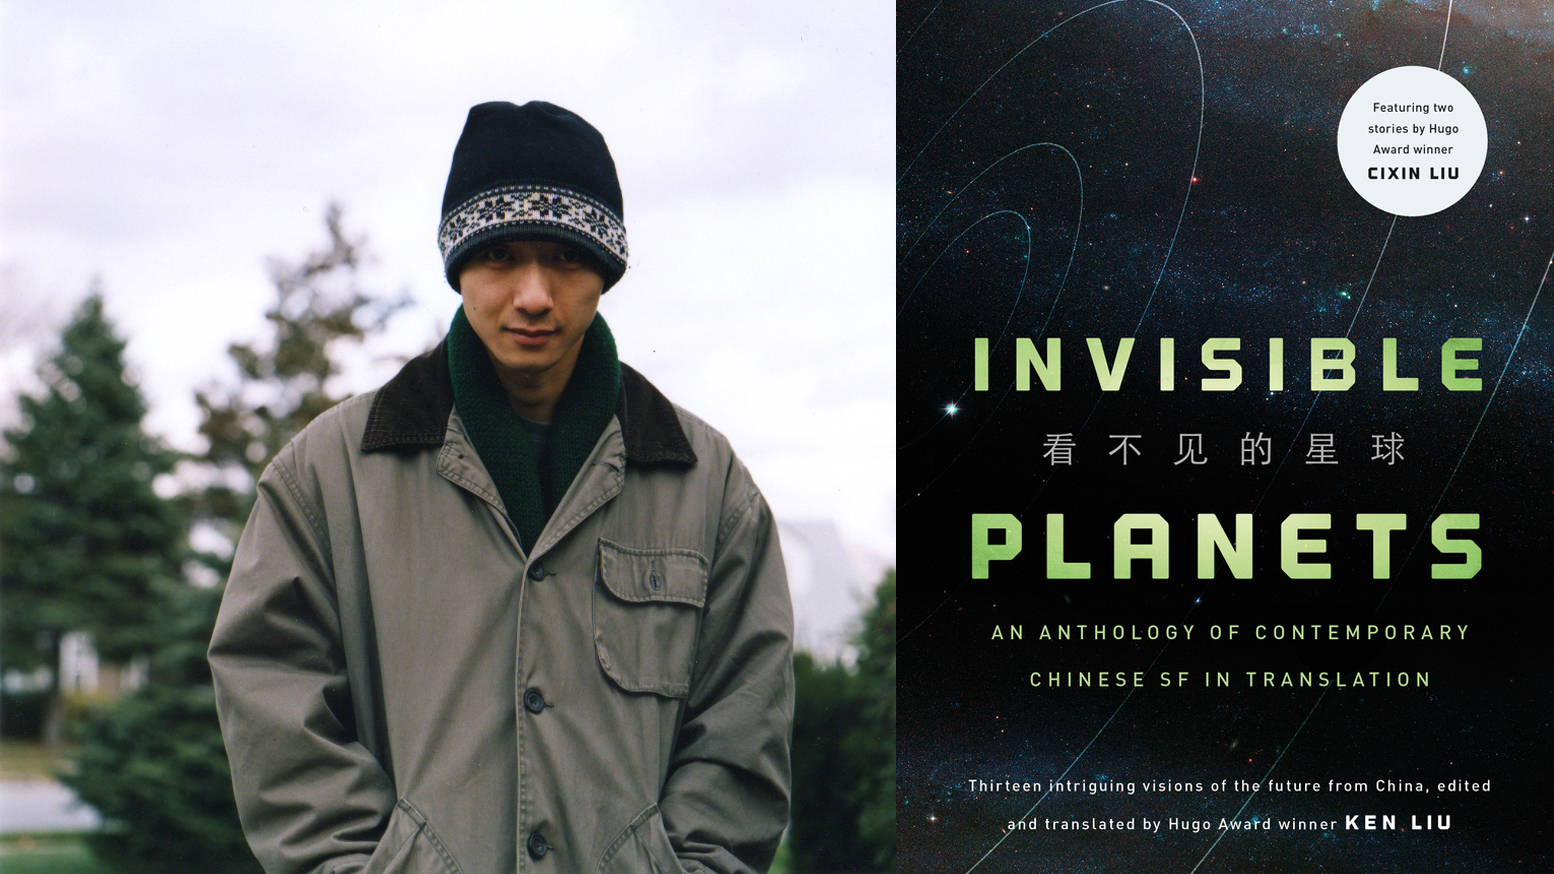 Ken Liu and his anthology of Chinese sci-fi in translation.